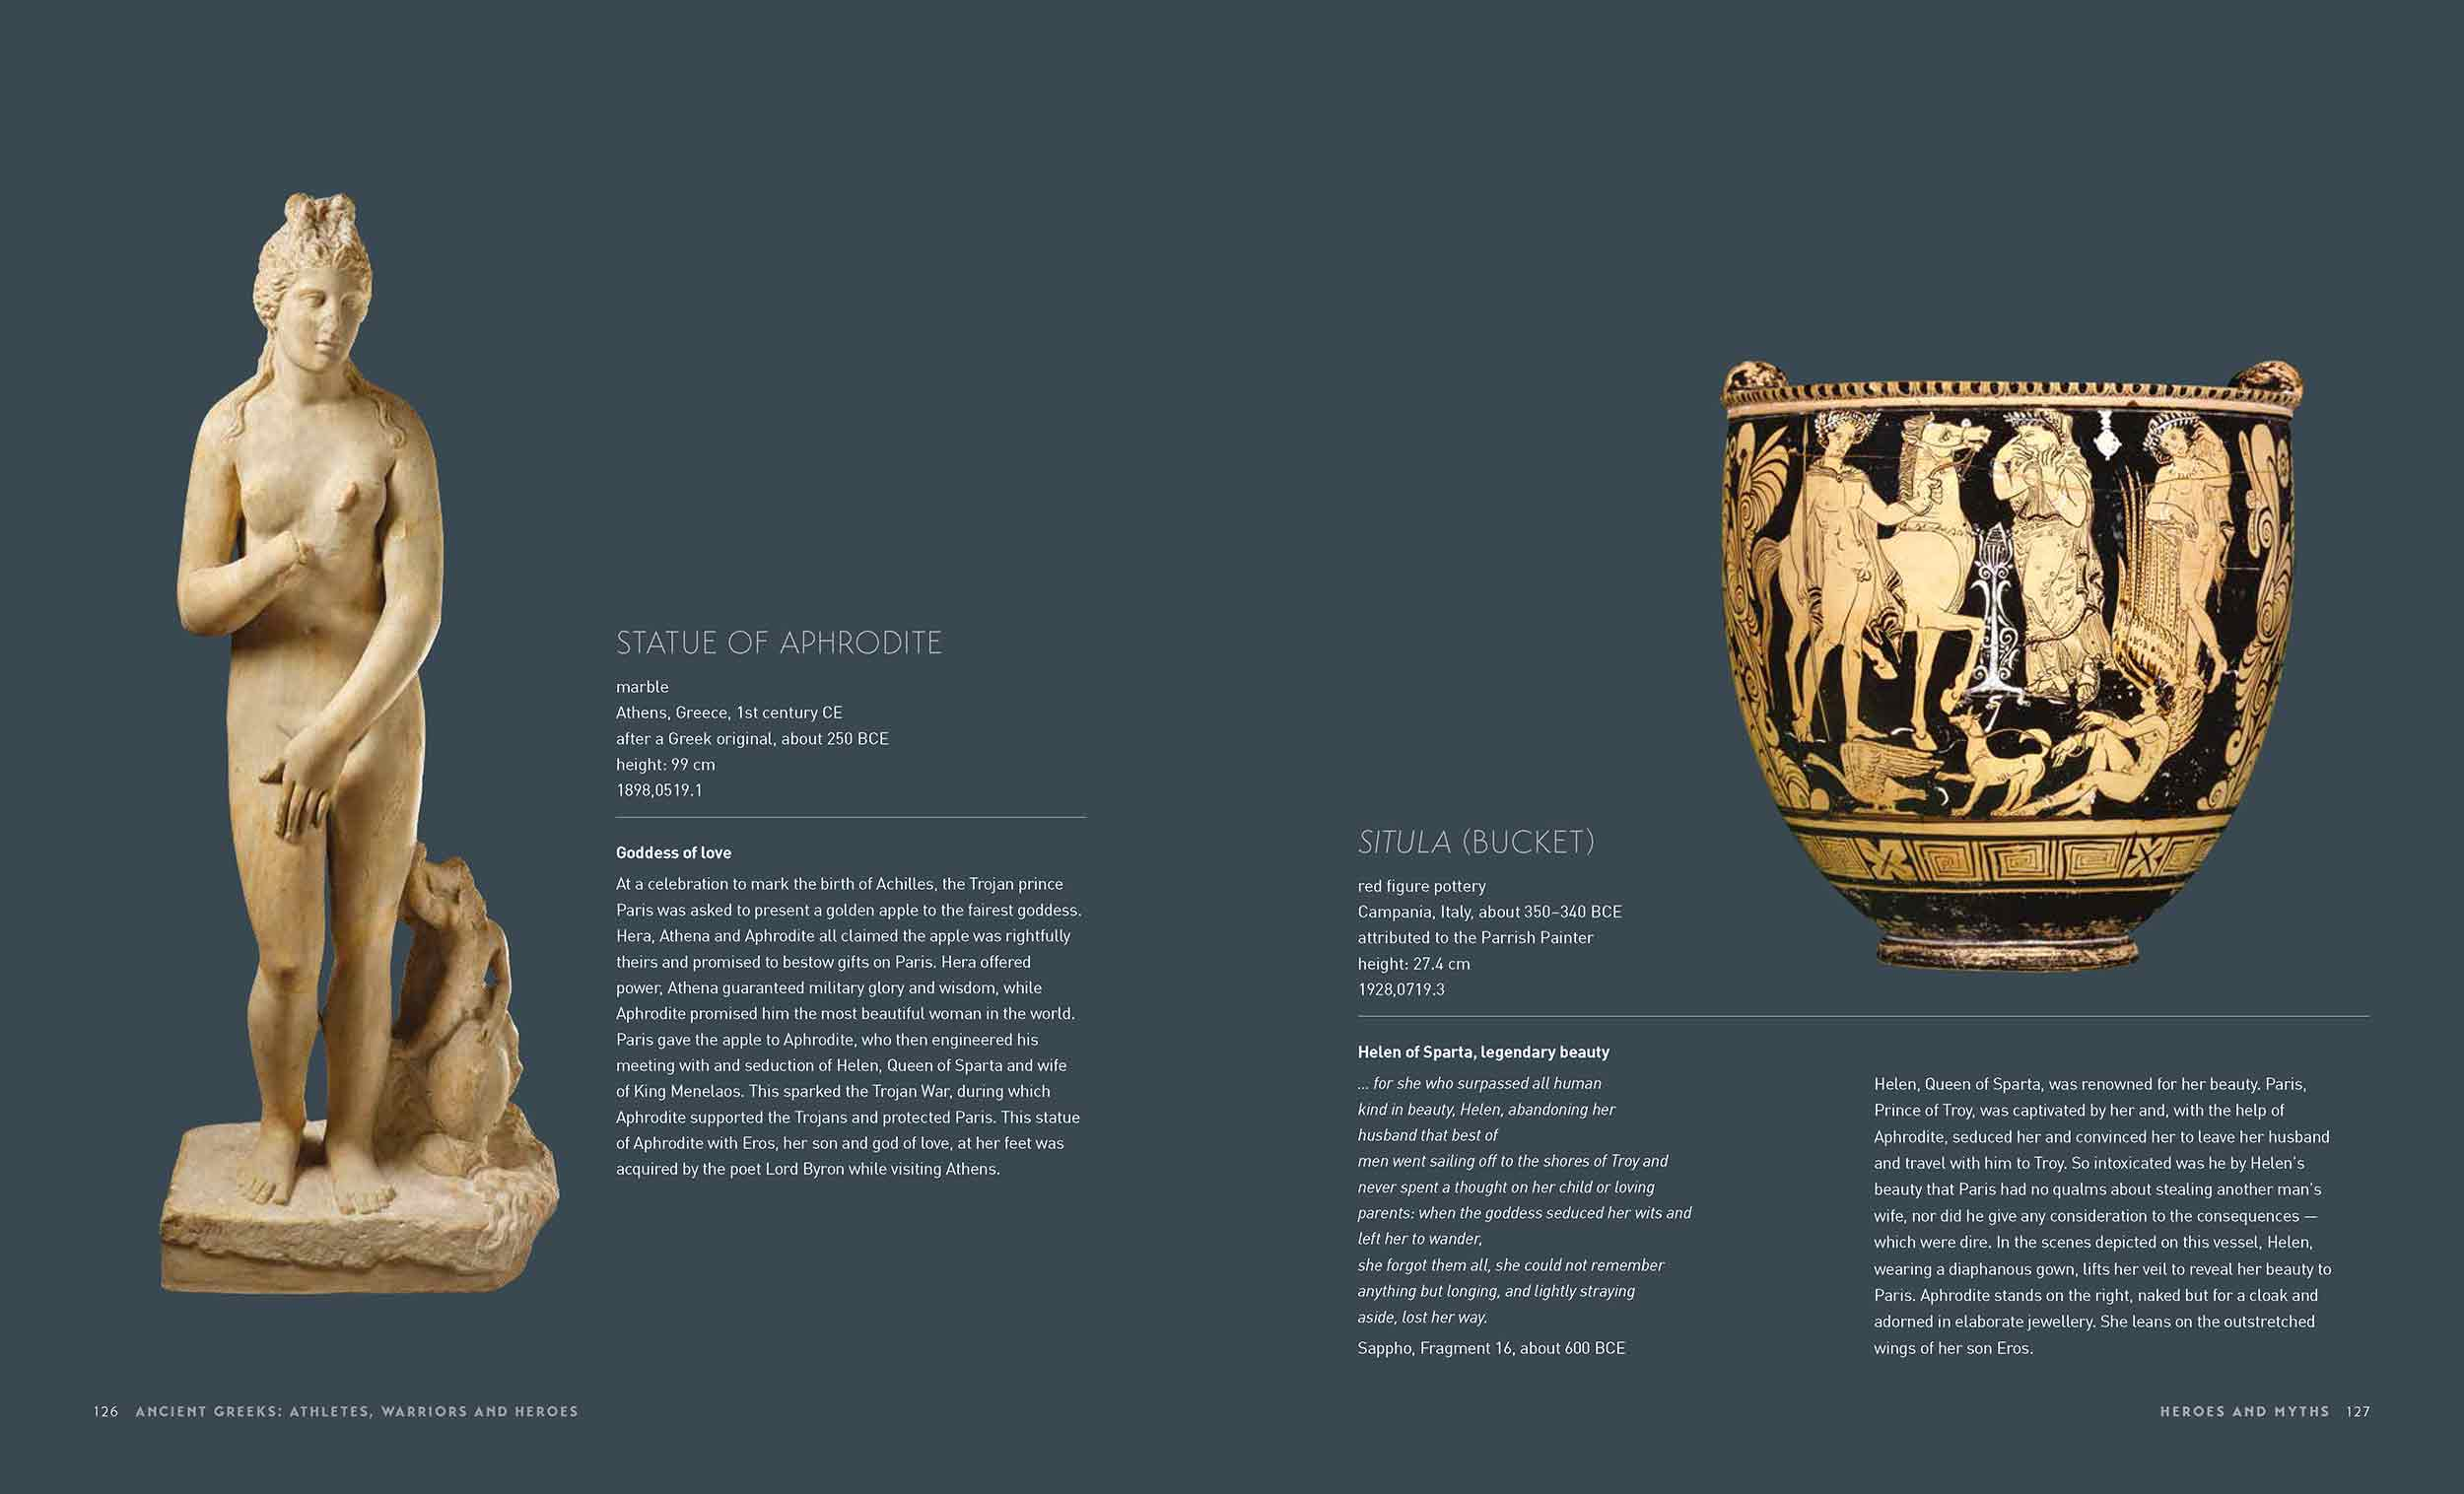 Sample page of a catalogue featuring a marble statue, a vessel and text. - click to view larger image